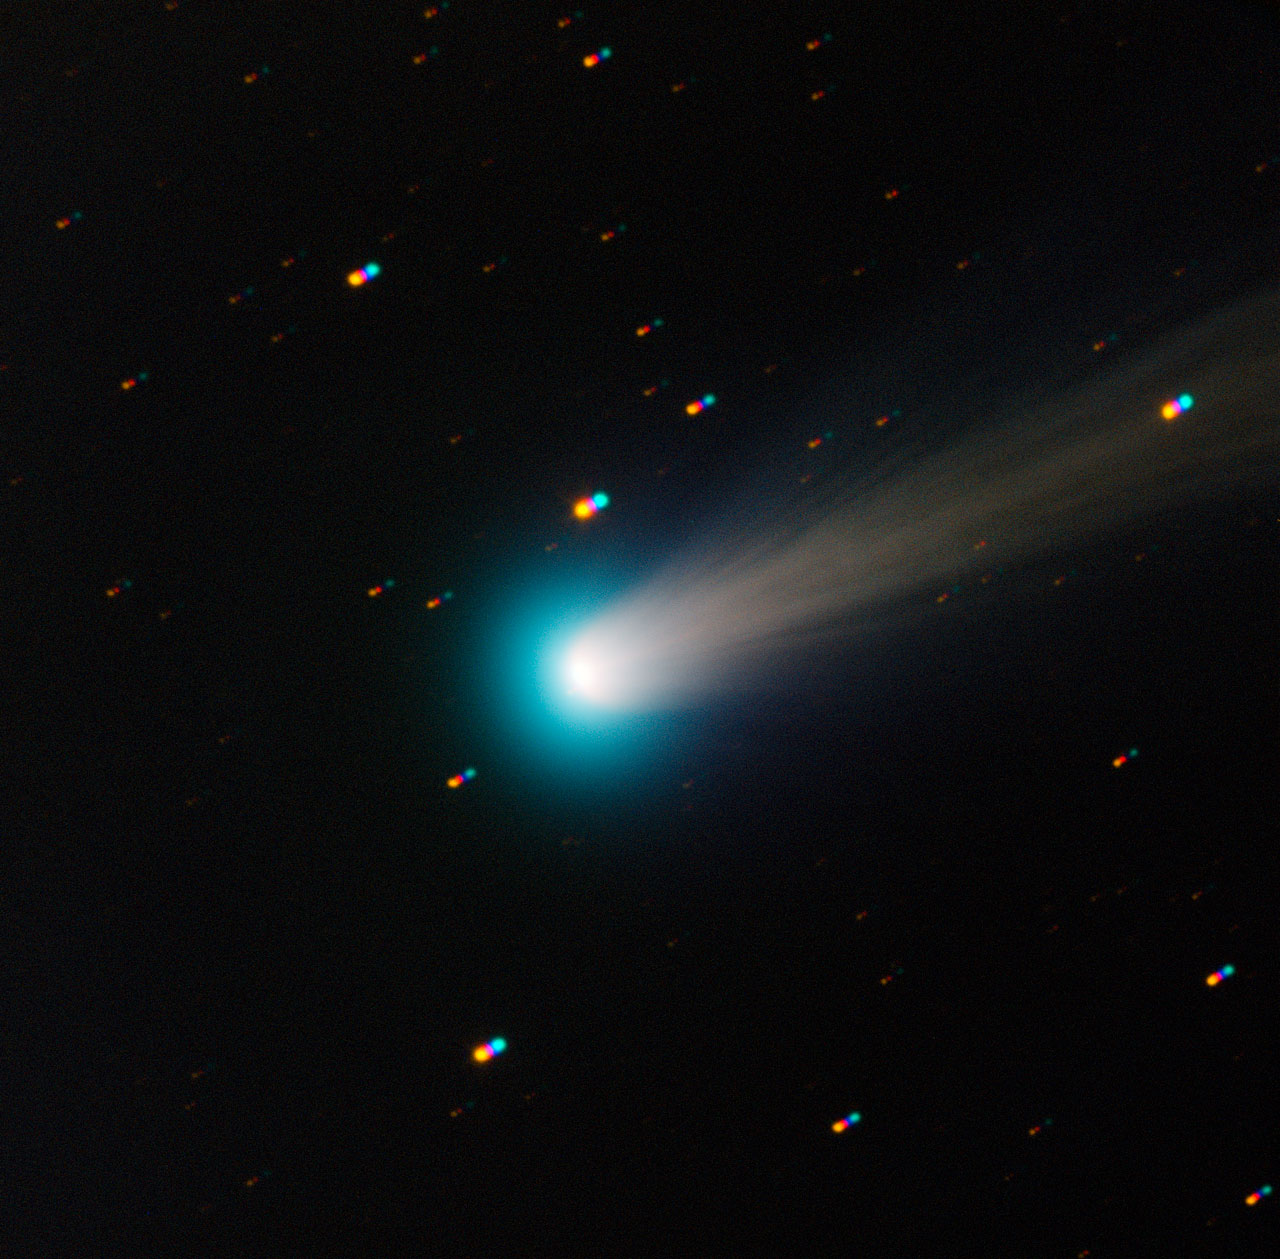 Comet ISON captured by the TRAPPIST national telescope at La Silla, Chile. Courtesy ESO